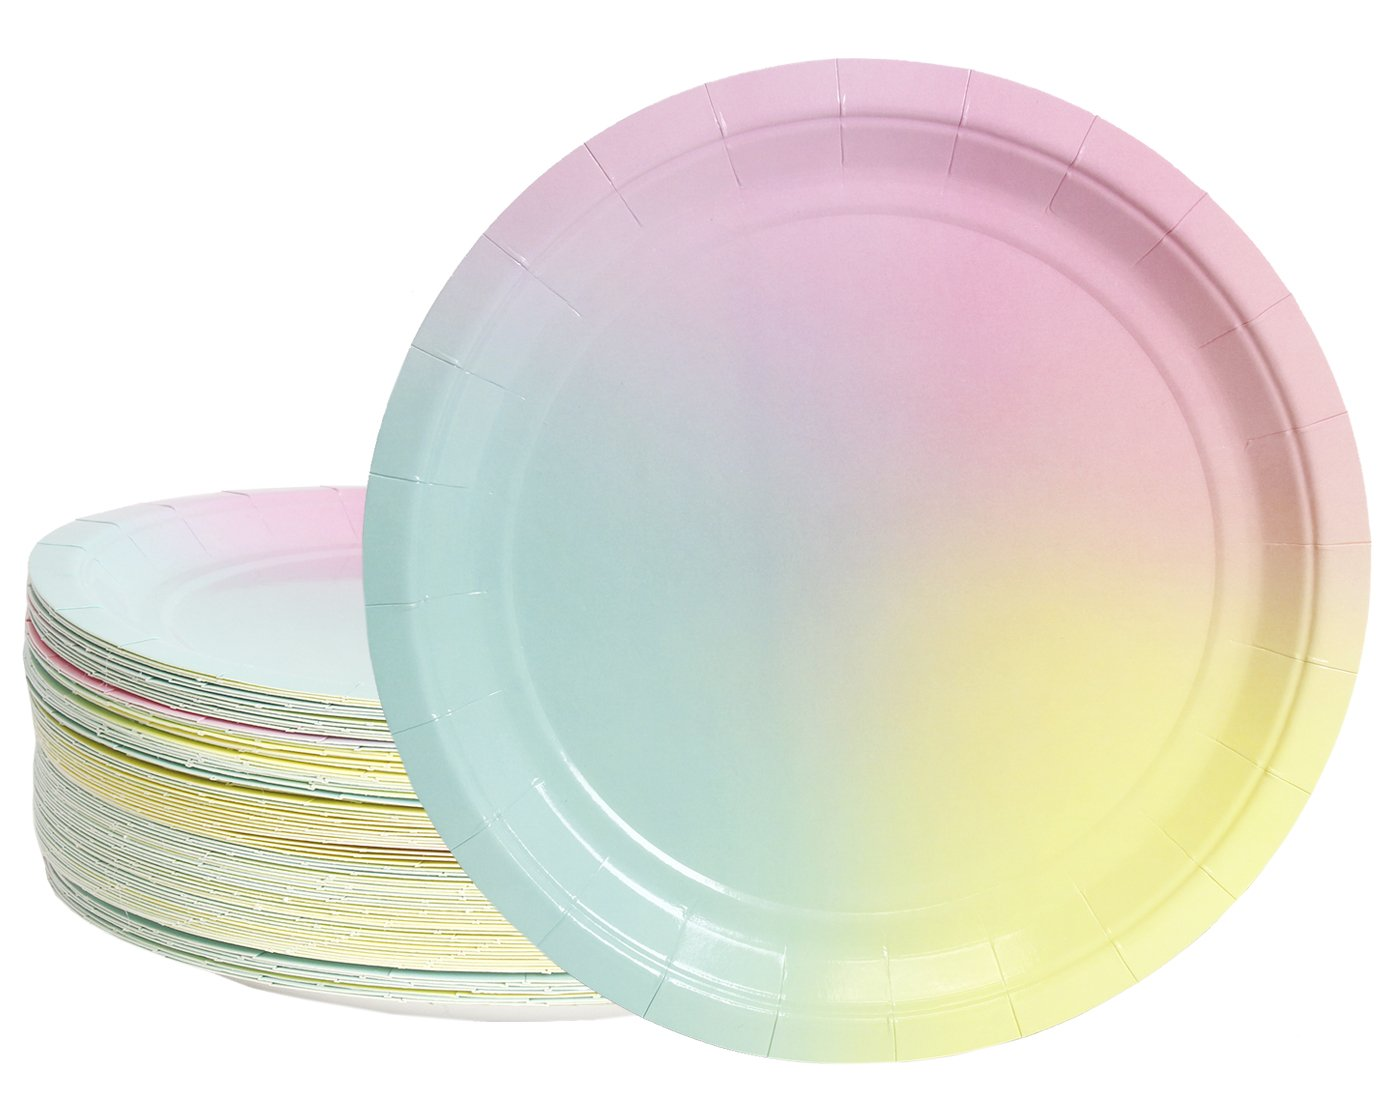 Disposable Plates - 80-Count Paper Plates, Ombre Party Supplies for Appetizer, Lunch, Dinner, and Dessert, Birthdays, Bridal Showers, 9 Inches in Diameter